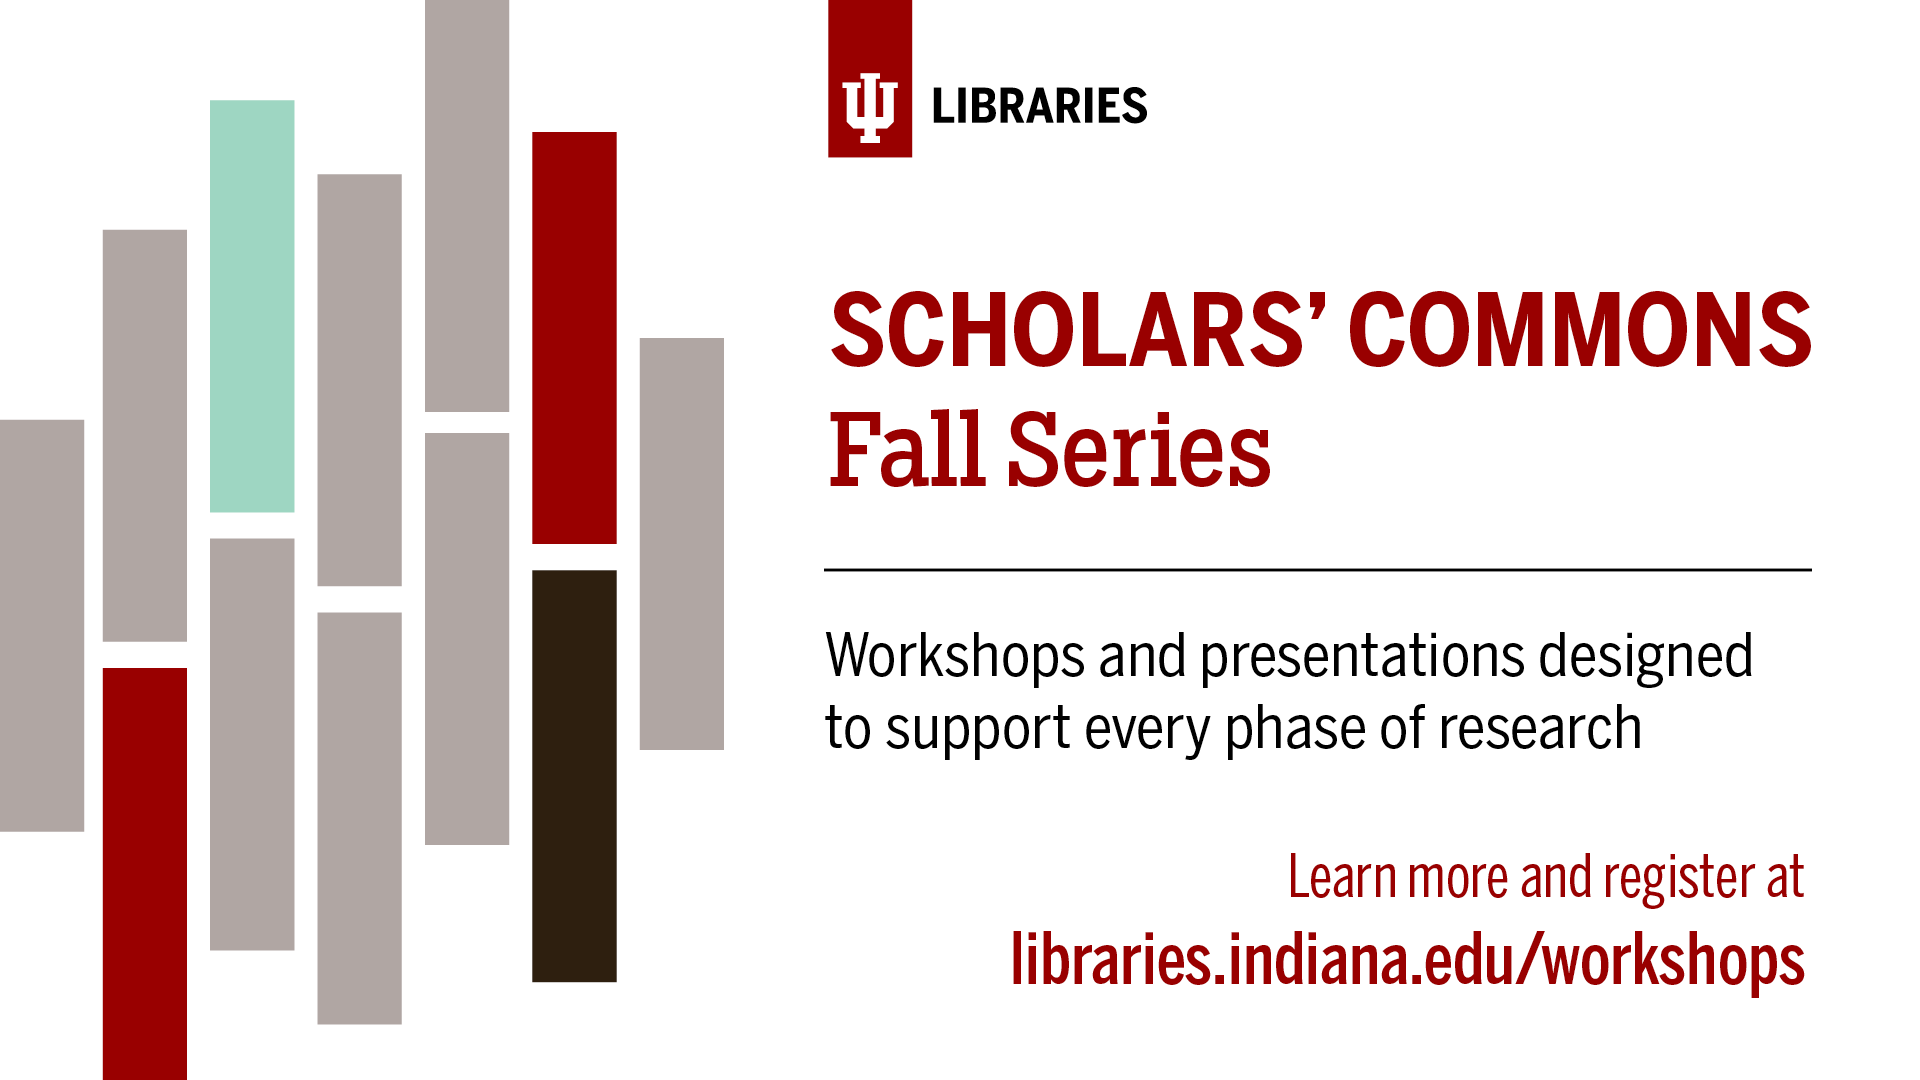 Learn more & register at libraries.indiana.edu/workshops